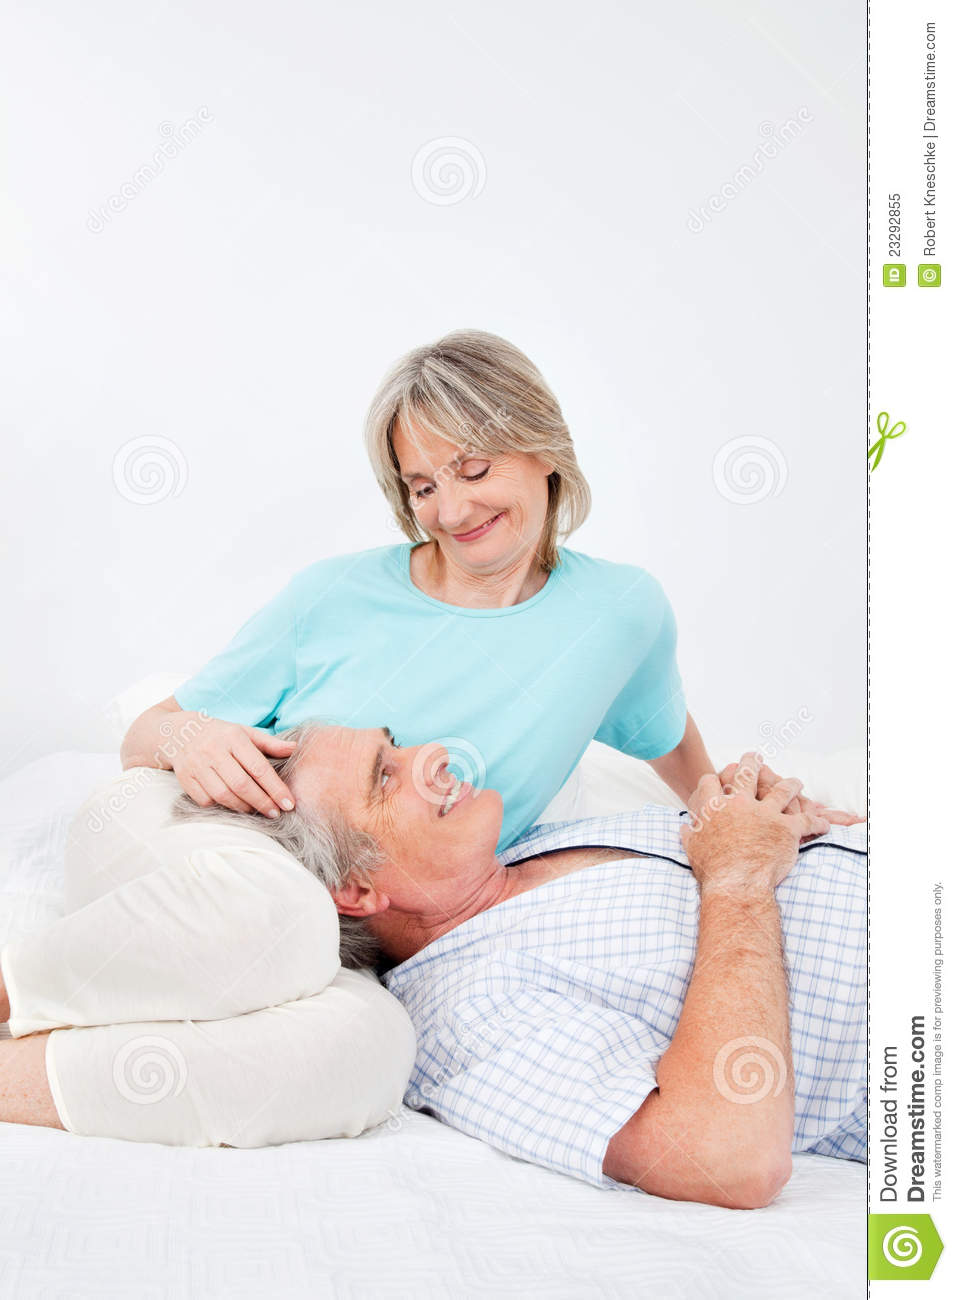 Senior Man And Woman In Bedroom Royalty Free Stock Photo ...